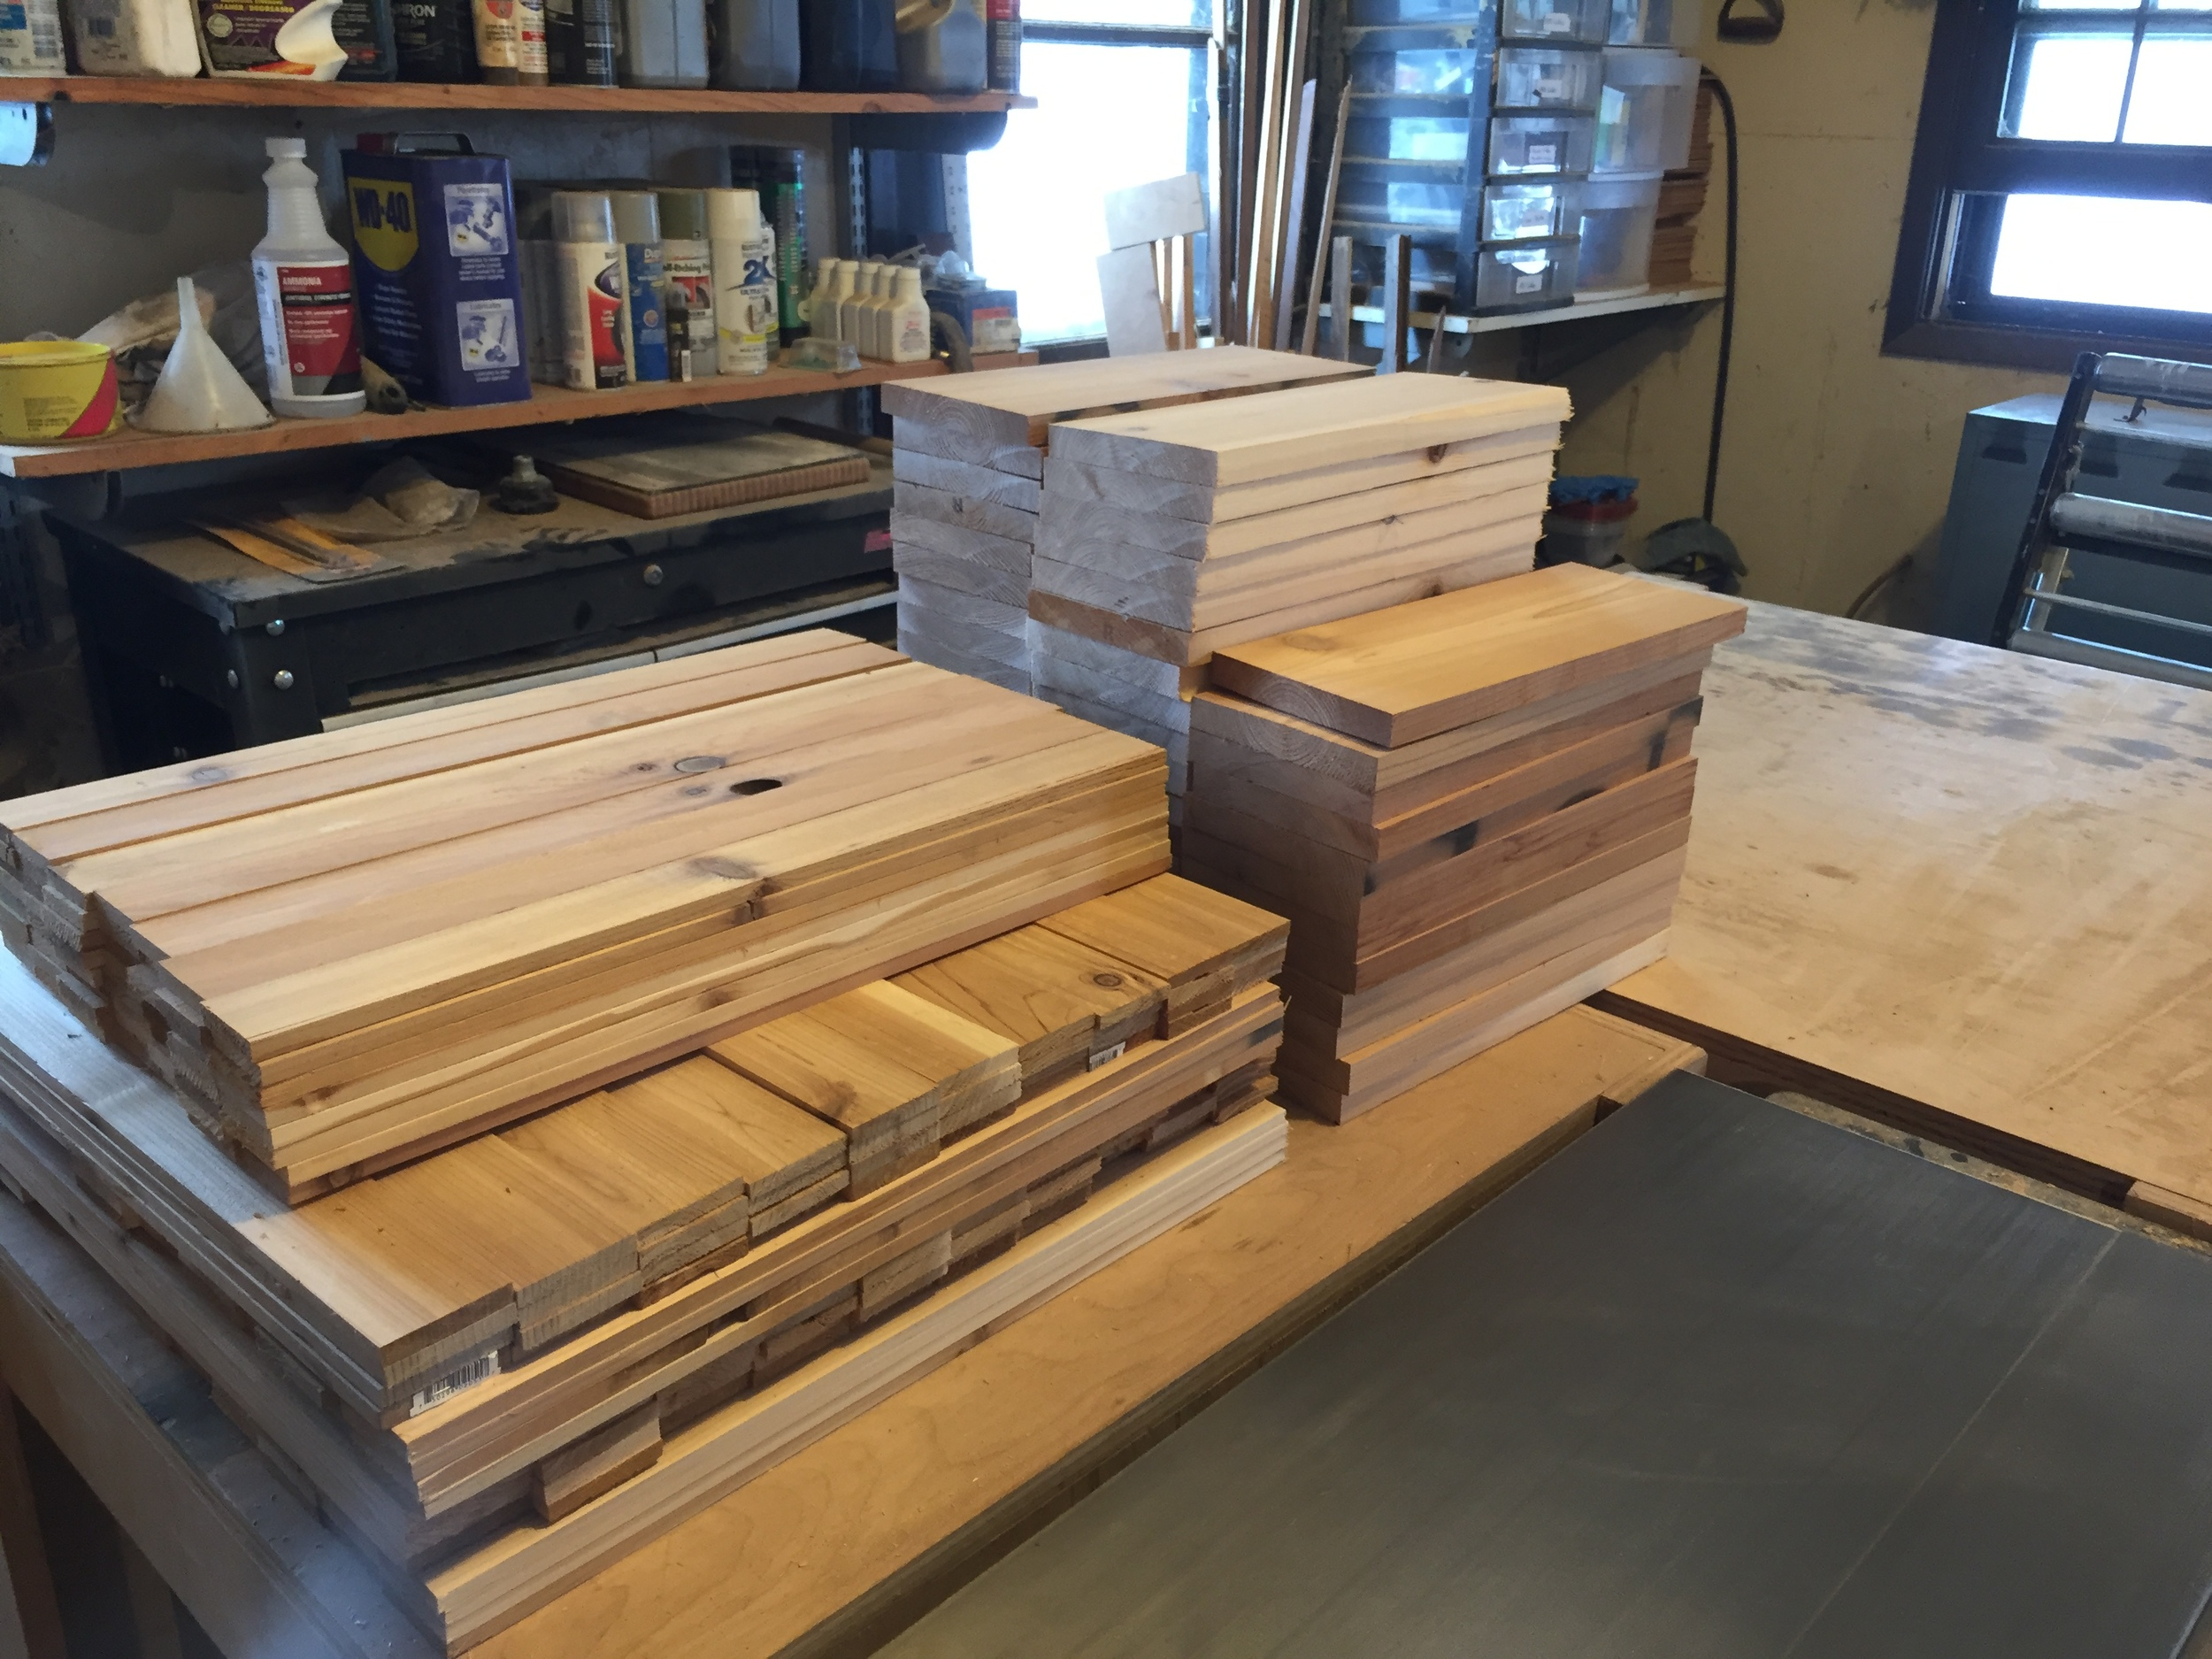 Parts for the construction of additional cedar crates.